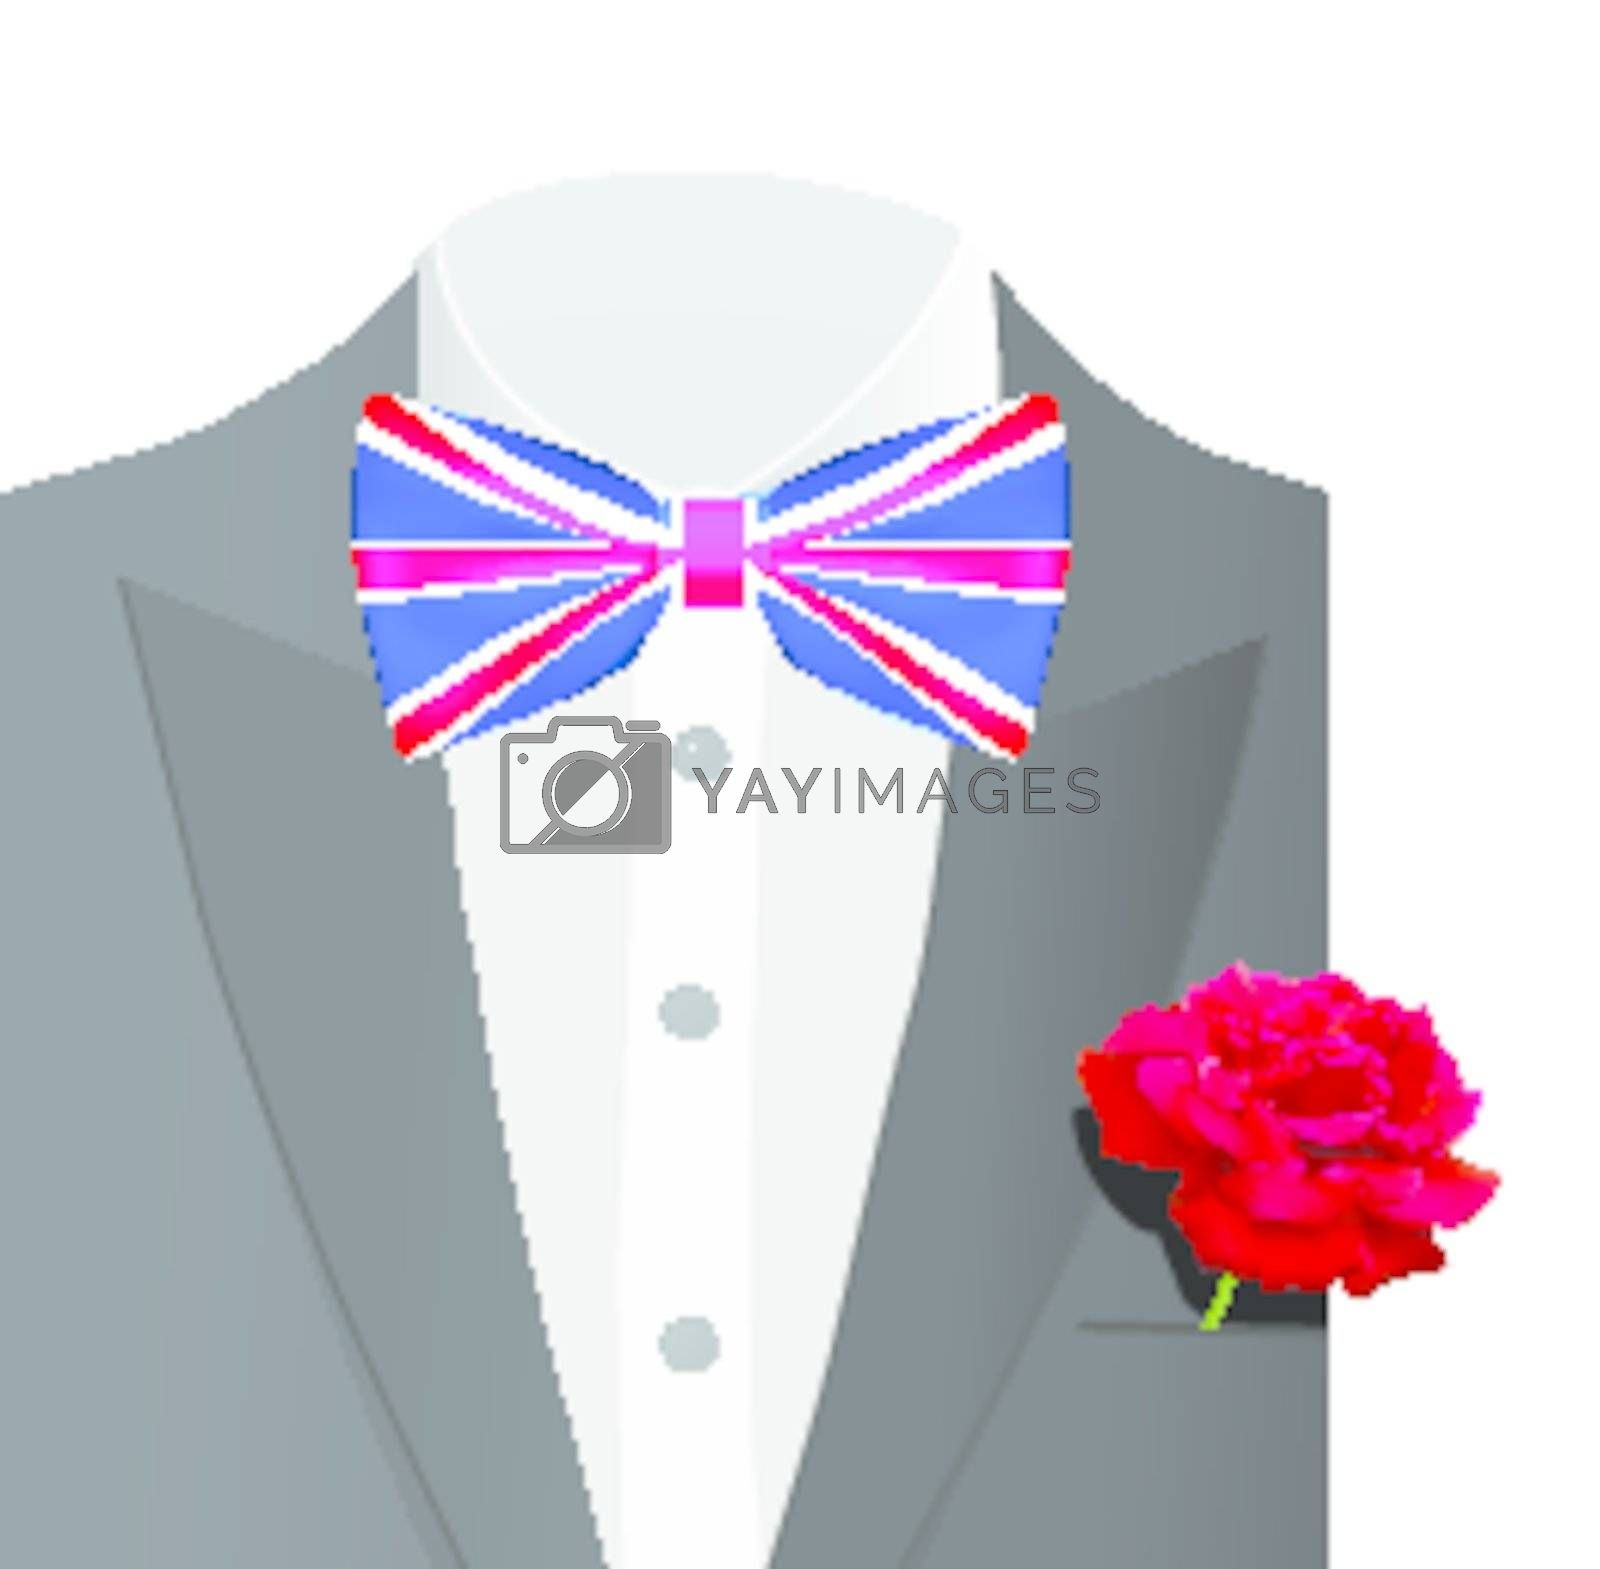 Royal wedding of Prince William and Kate Middleton. Vector illustration